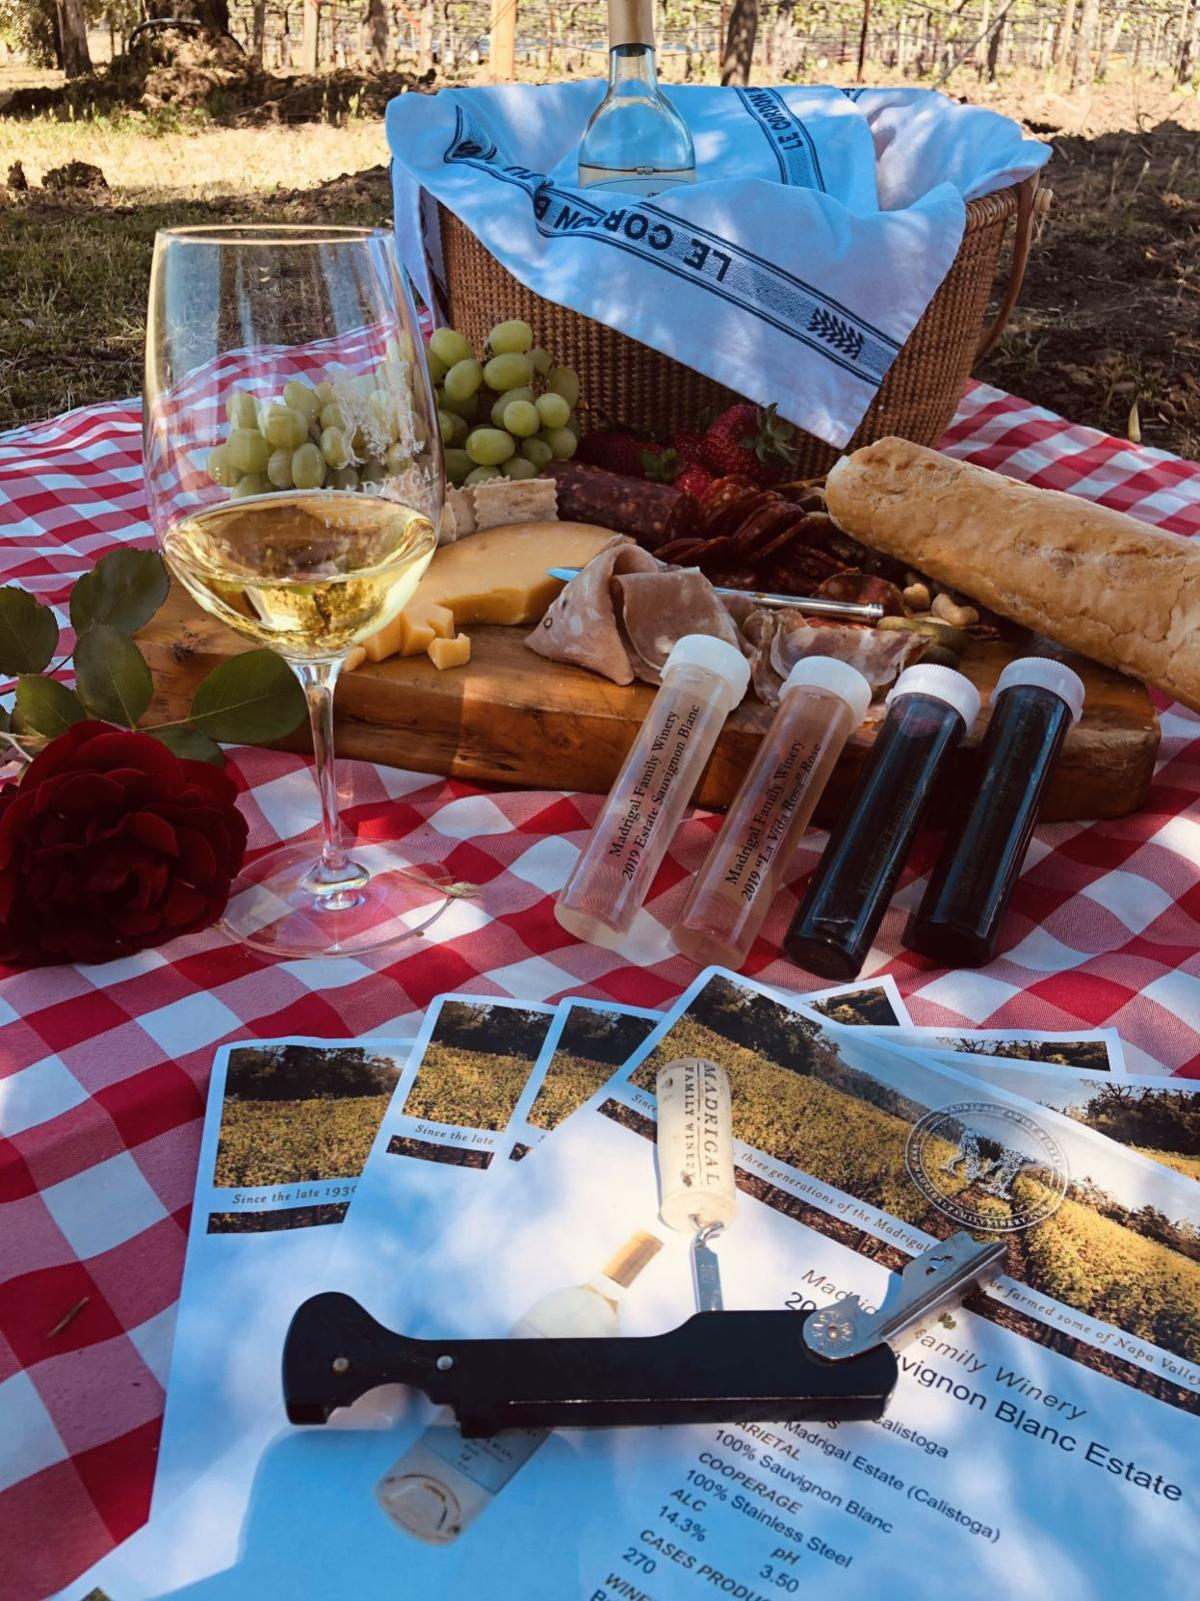 Madrigal SIP Sanity Kit 2 Madrigal Family Winery.jpeg